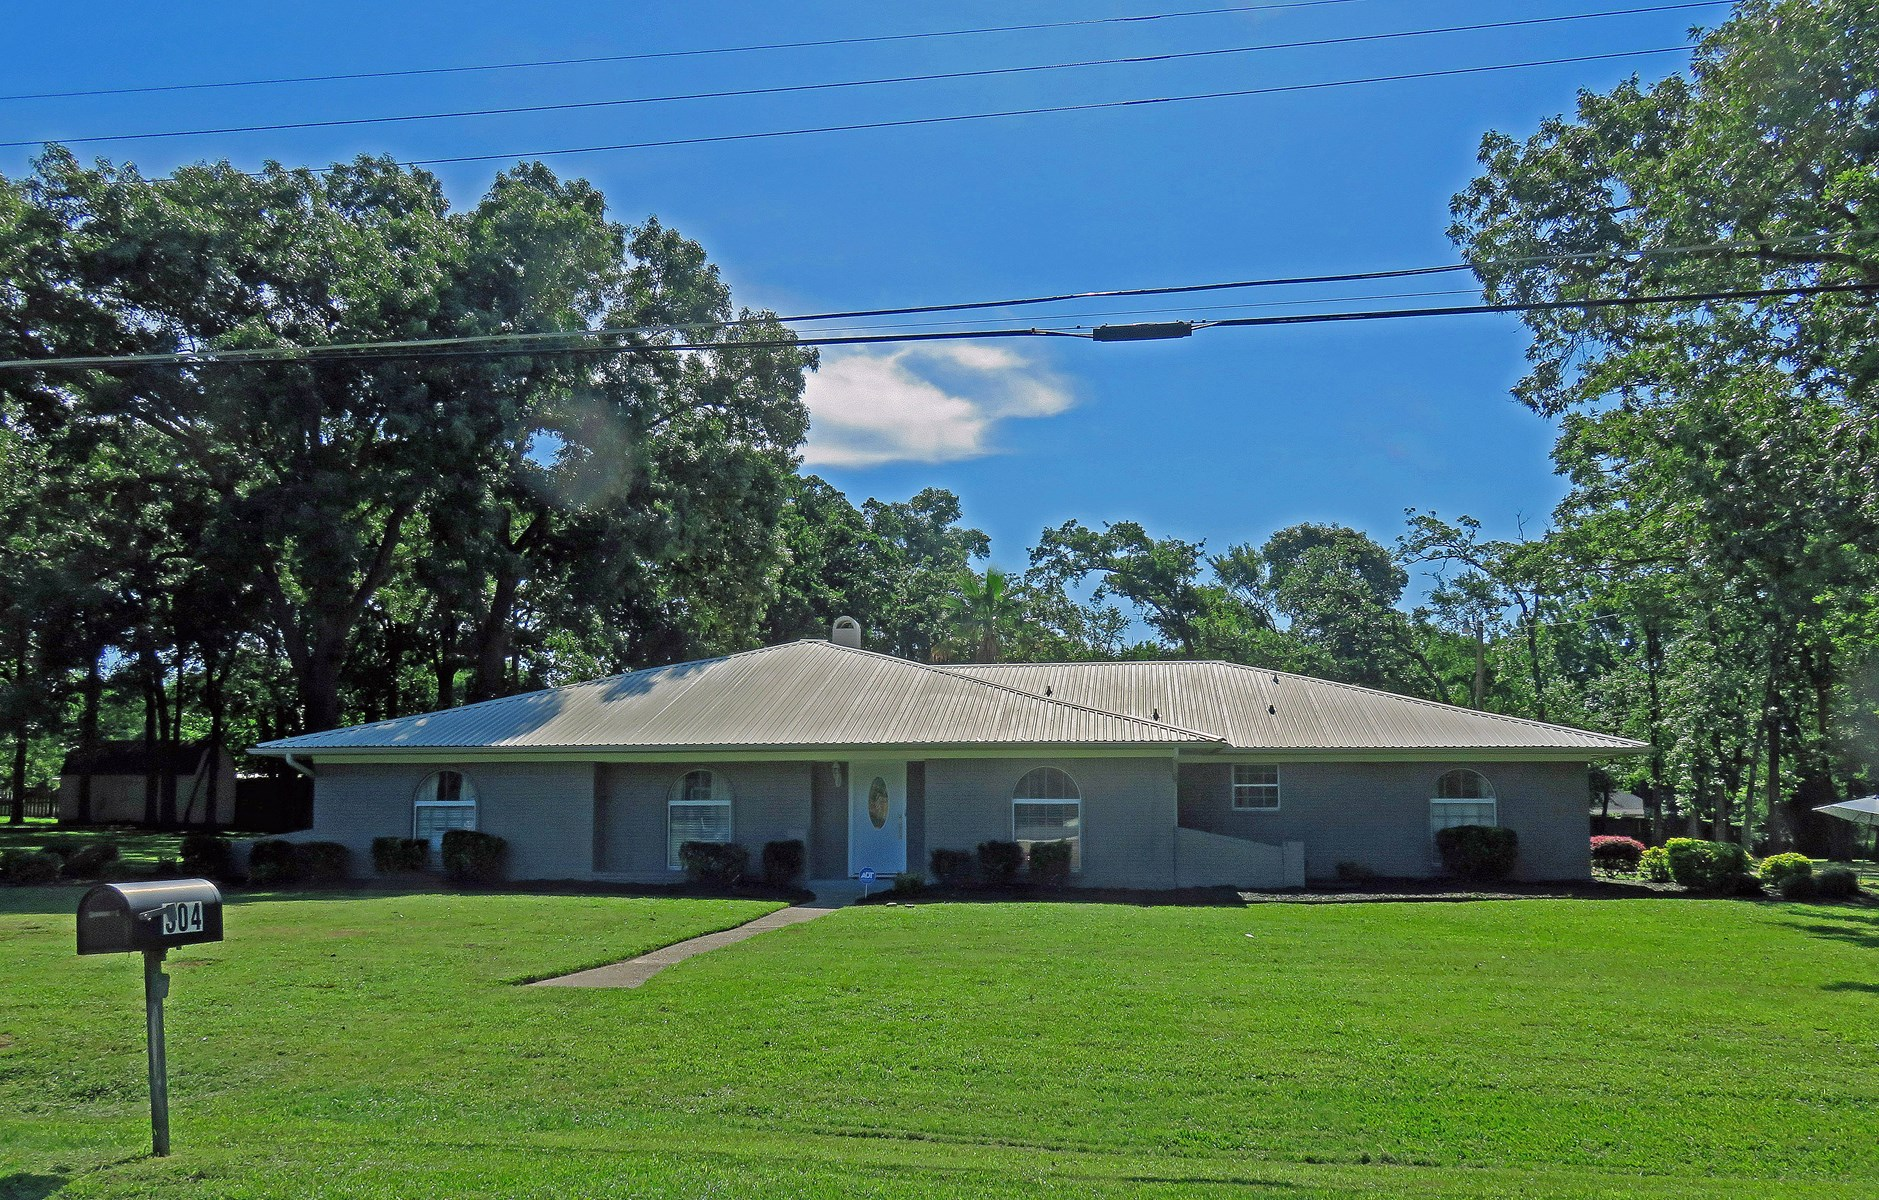 SPACIOUS UPDATED HOME FOR SALE IN EAST TEXAS WITH POOL